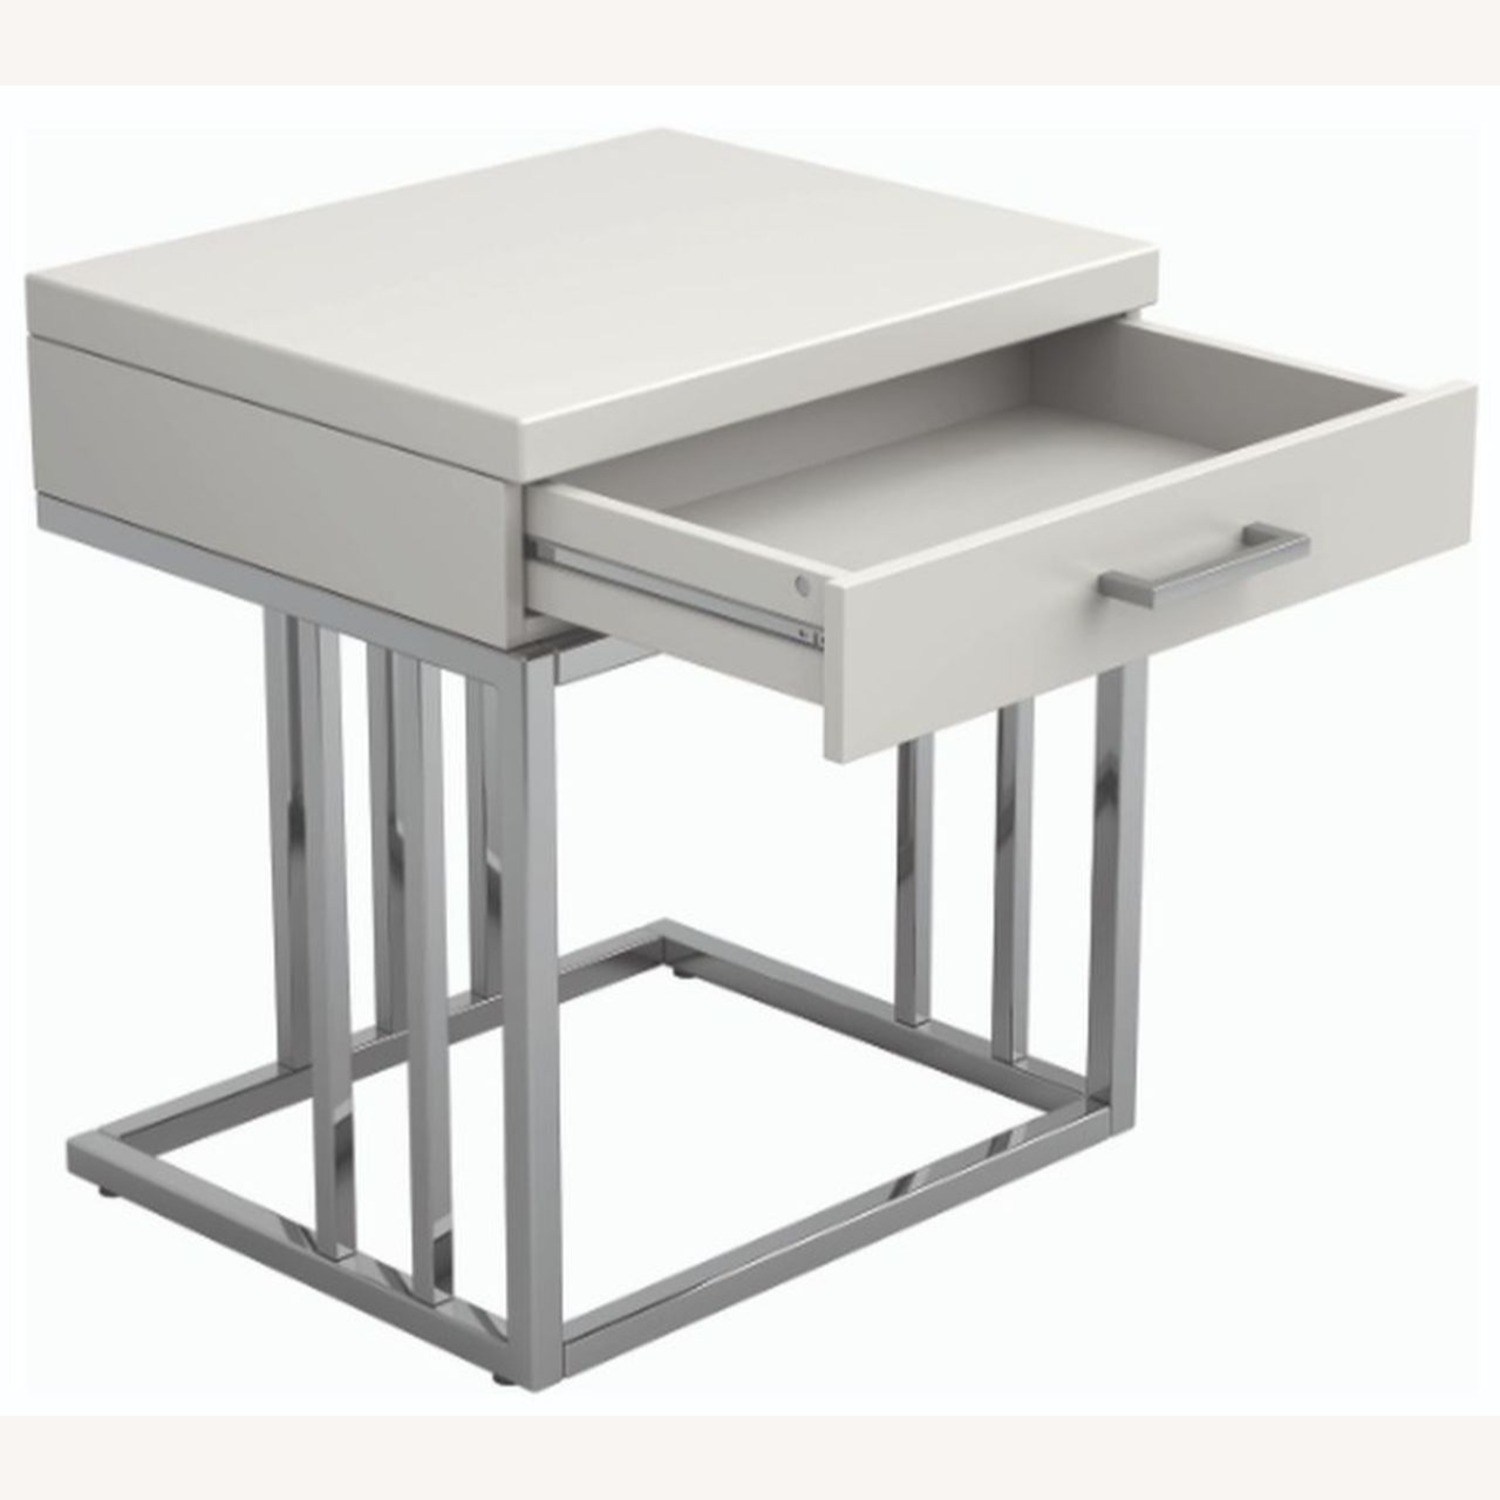 Modern End Table W/ Glossy White Tabletop - image-2